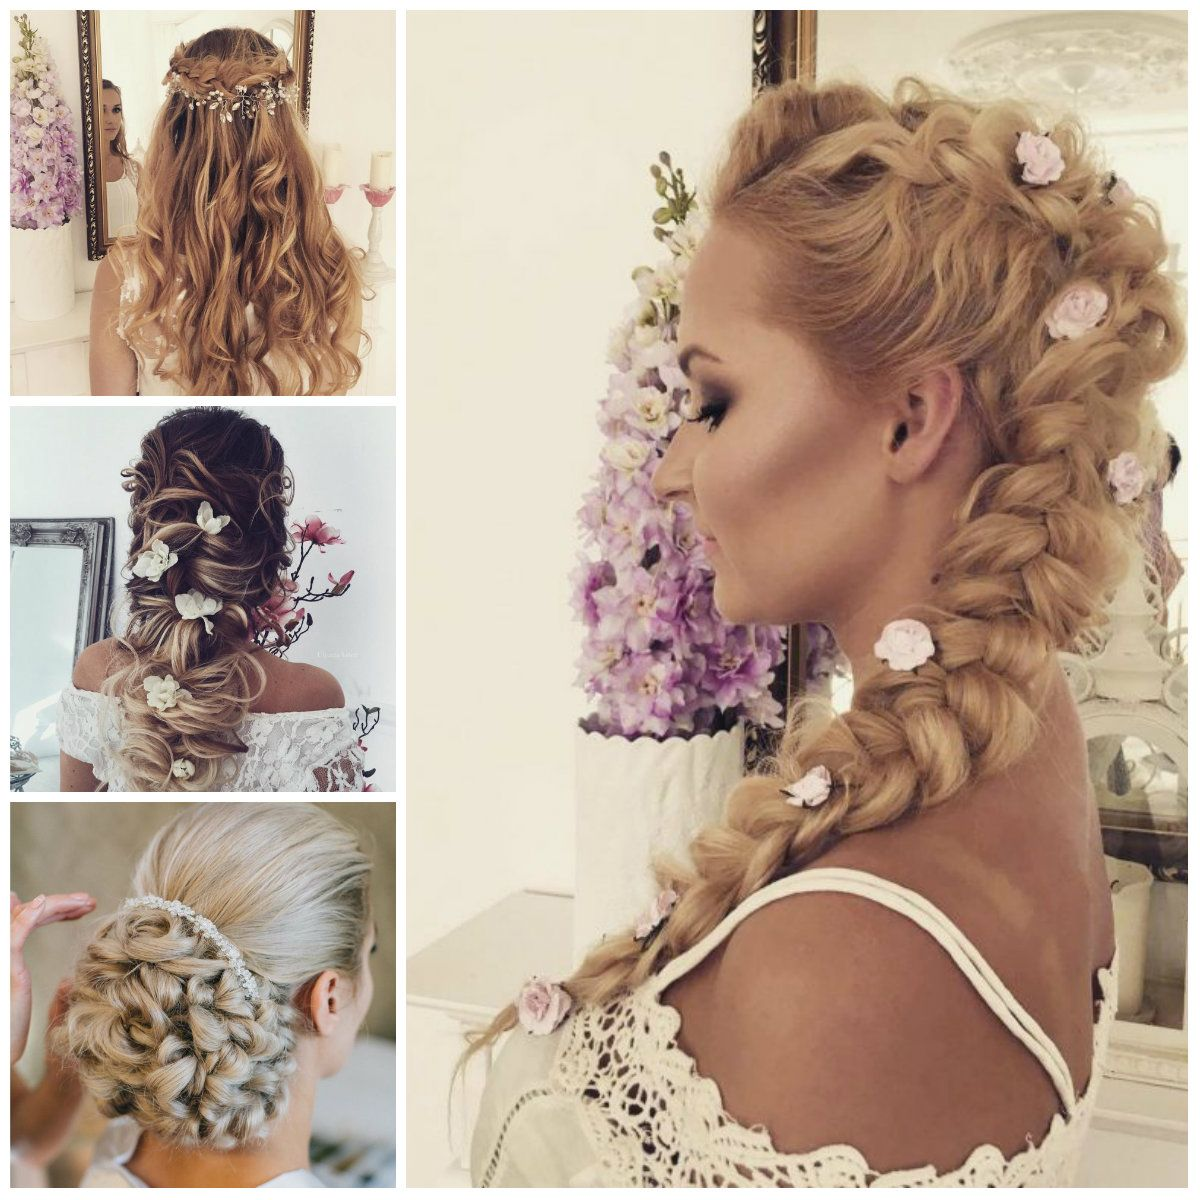 wedding hairstyles | haircuts, hairstyles 2016 / 2017 and hair